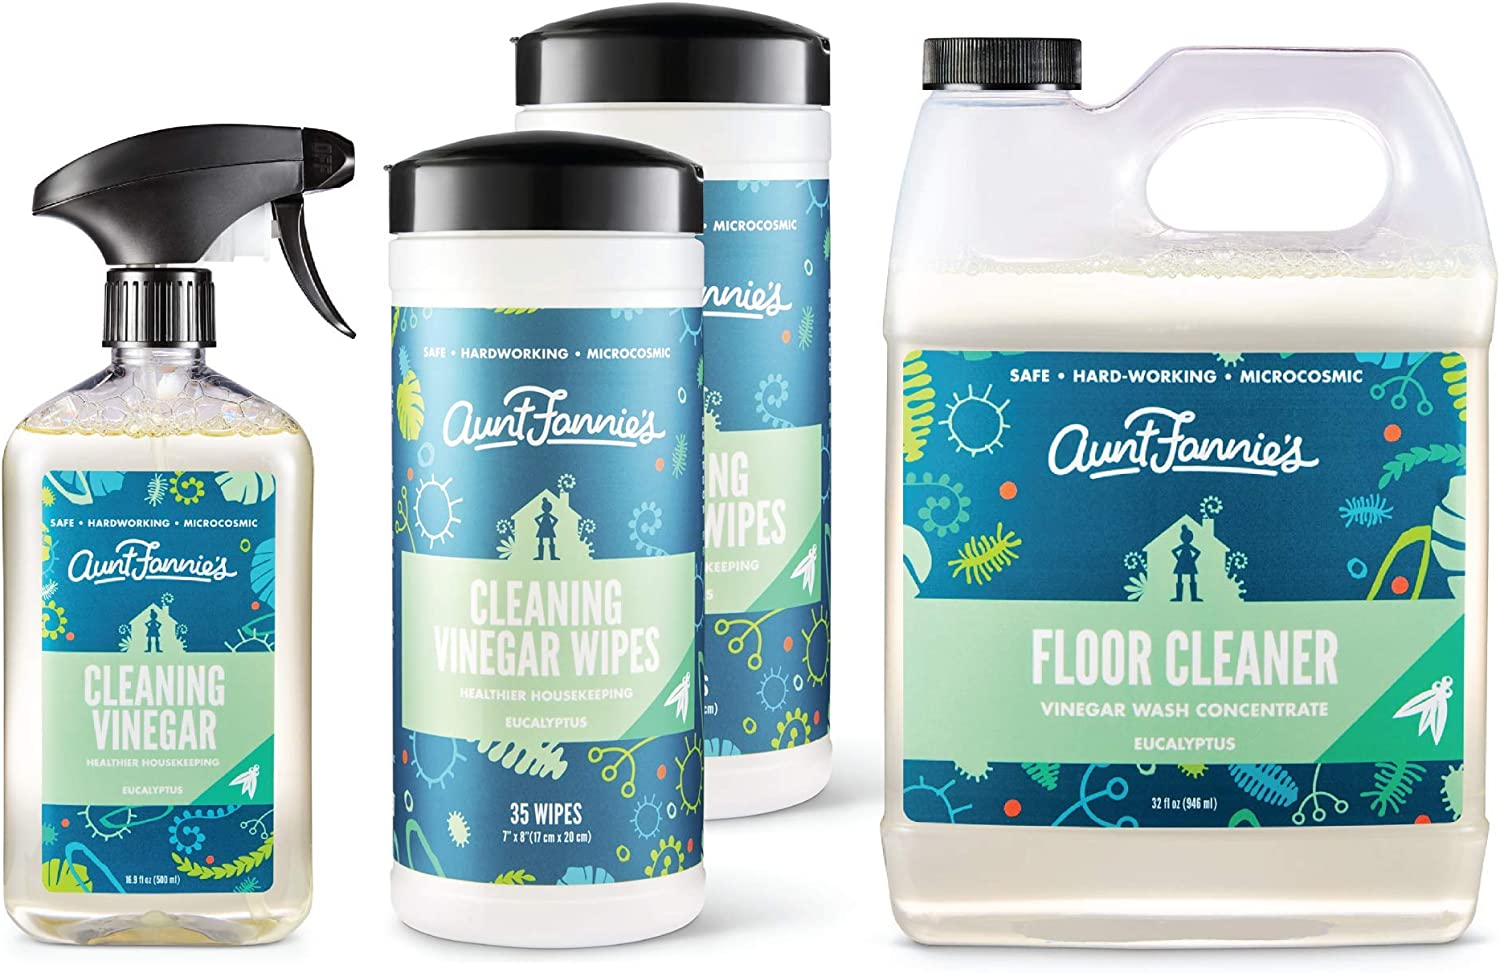 Aunt Fannie's Multi-Surface Vinegar Cleaning Special Campaign All Bundle: National products Purpose